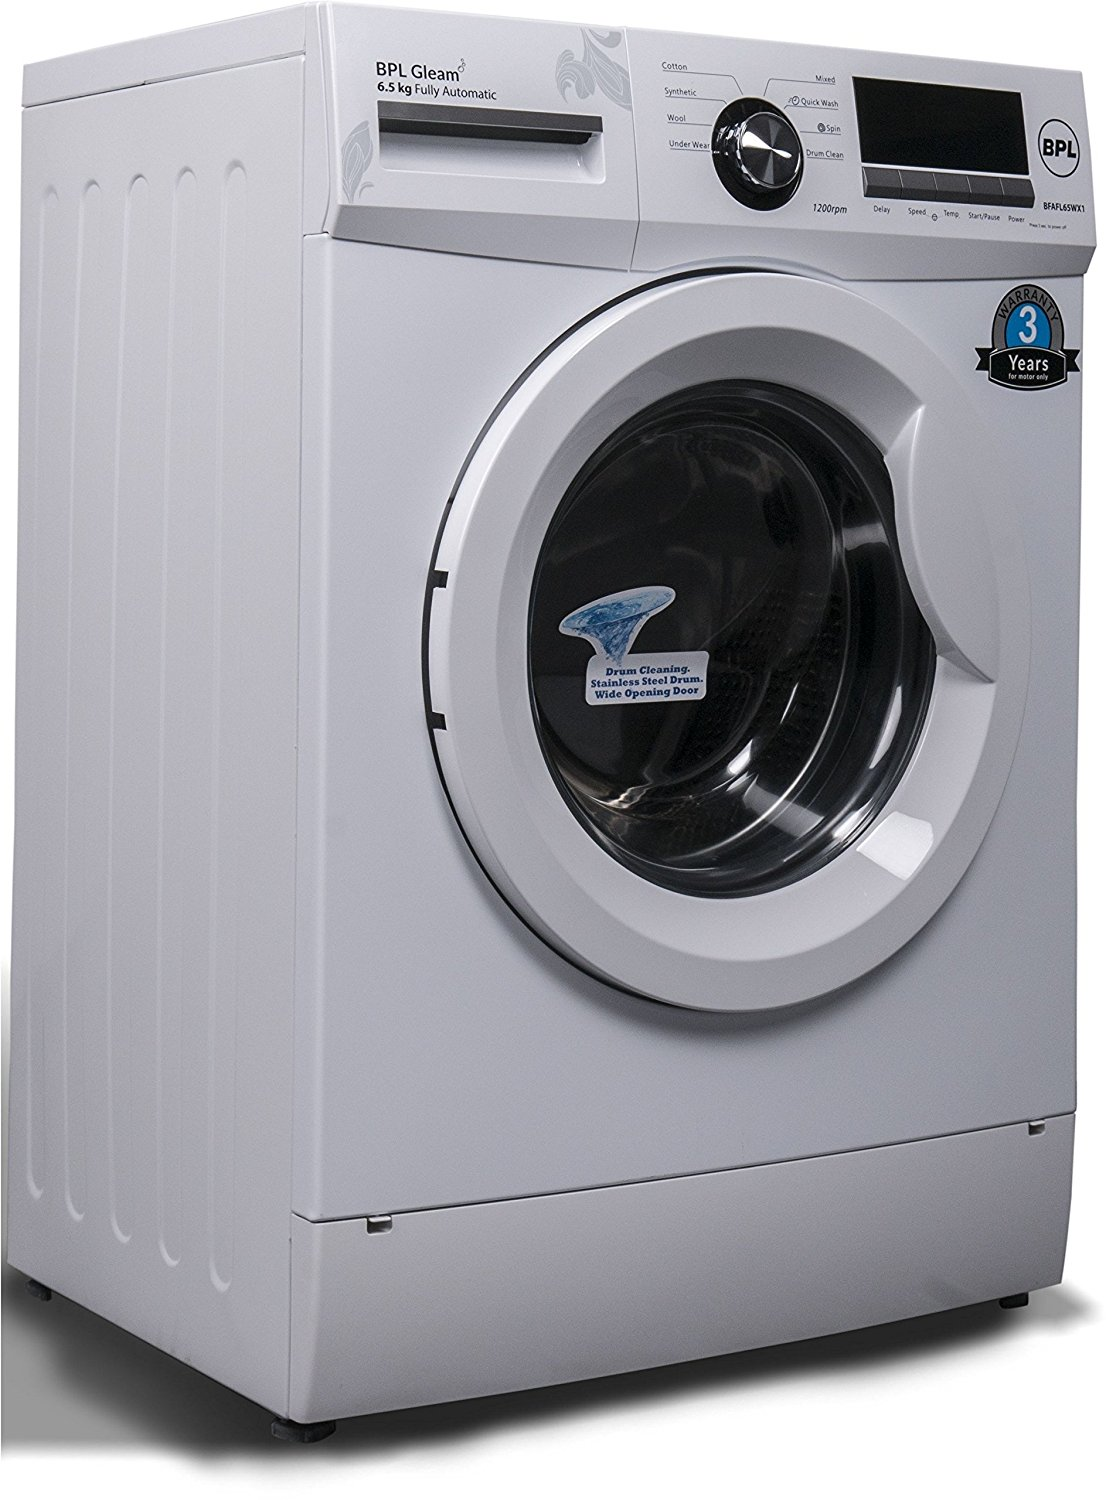 Cool Front Door Washing Machine Price In India Contemporary Image